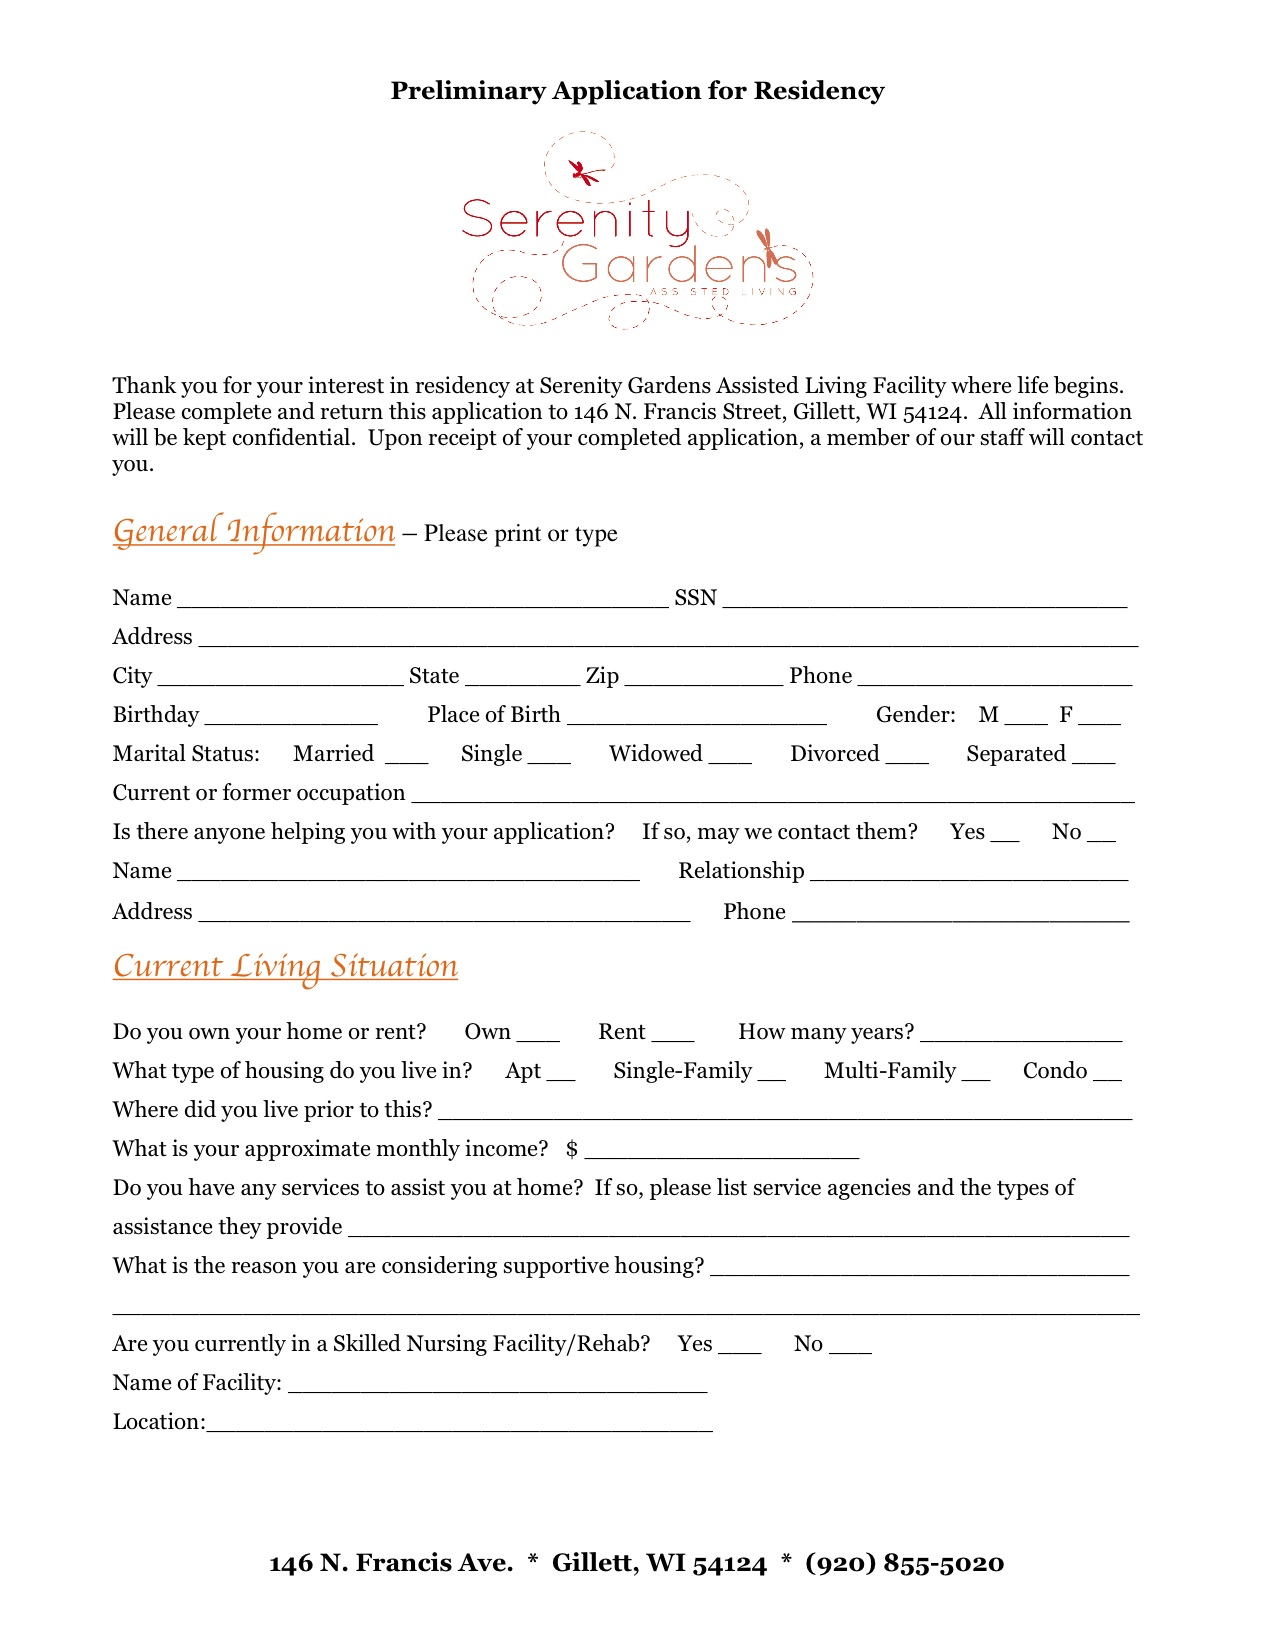 Serenity Gardens Assisted Living Facility Residency Application